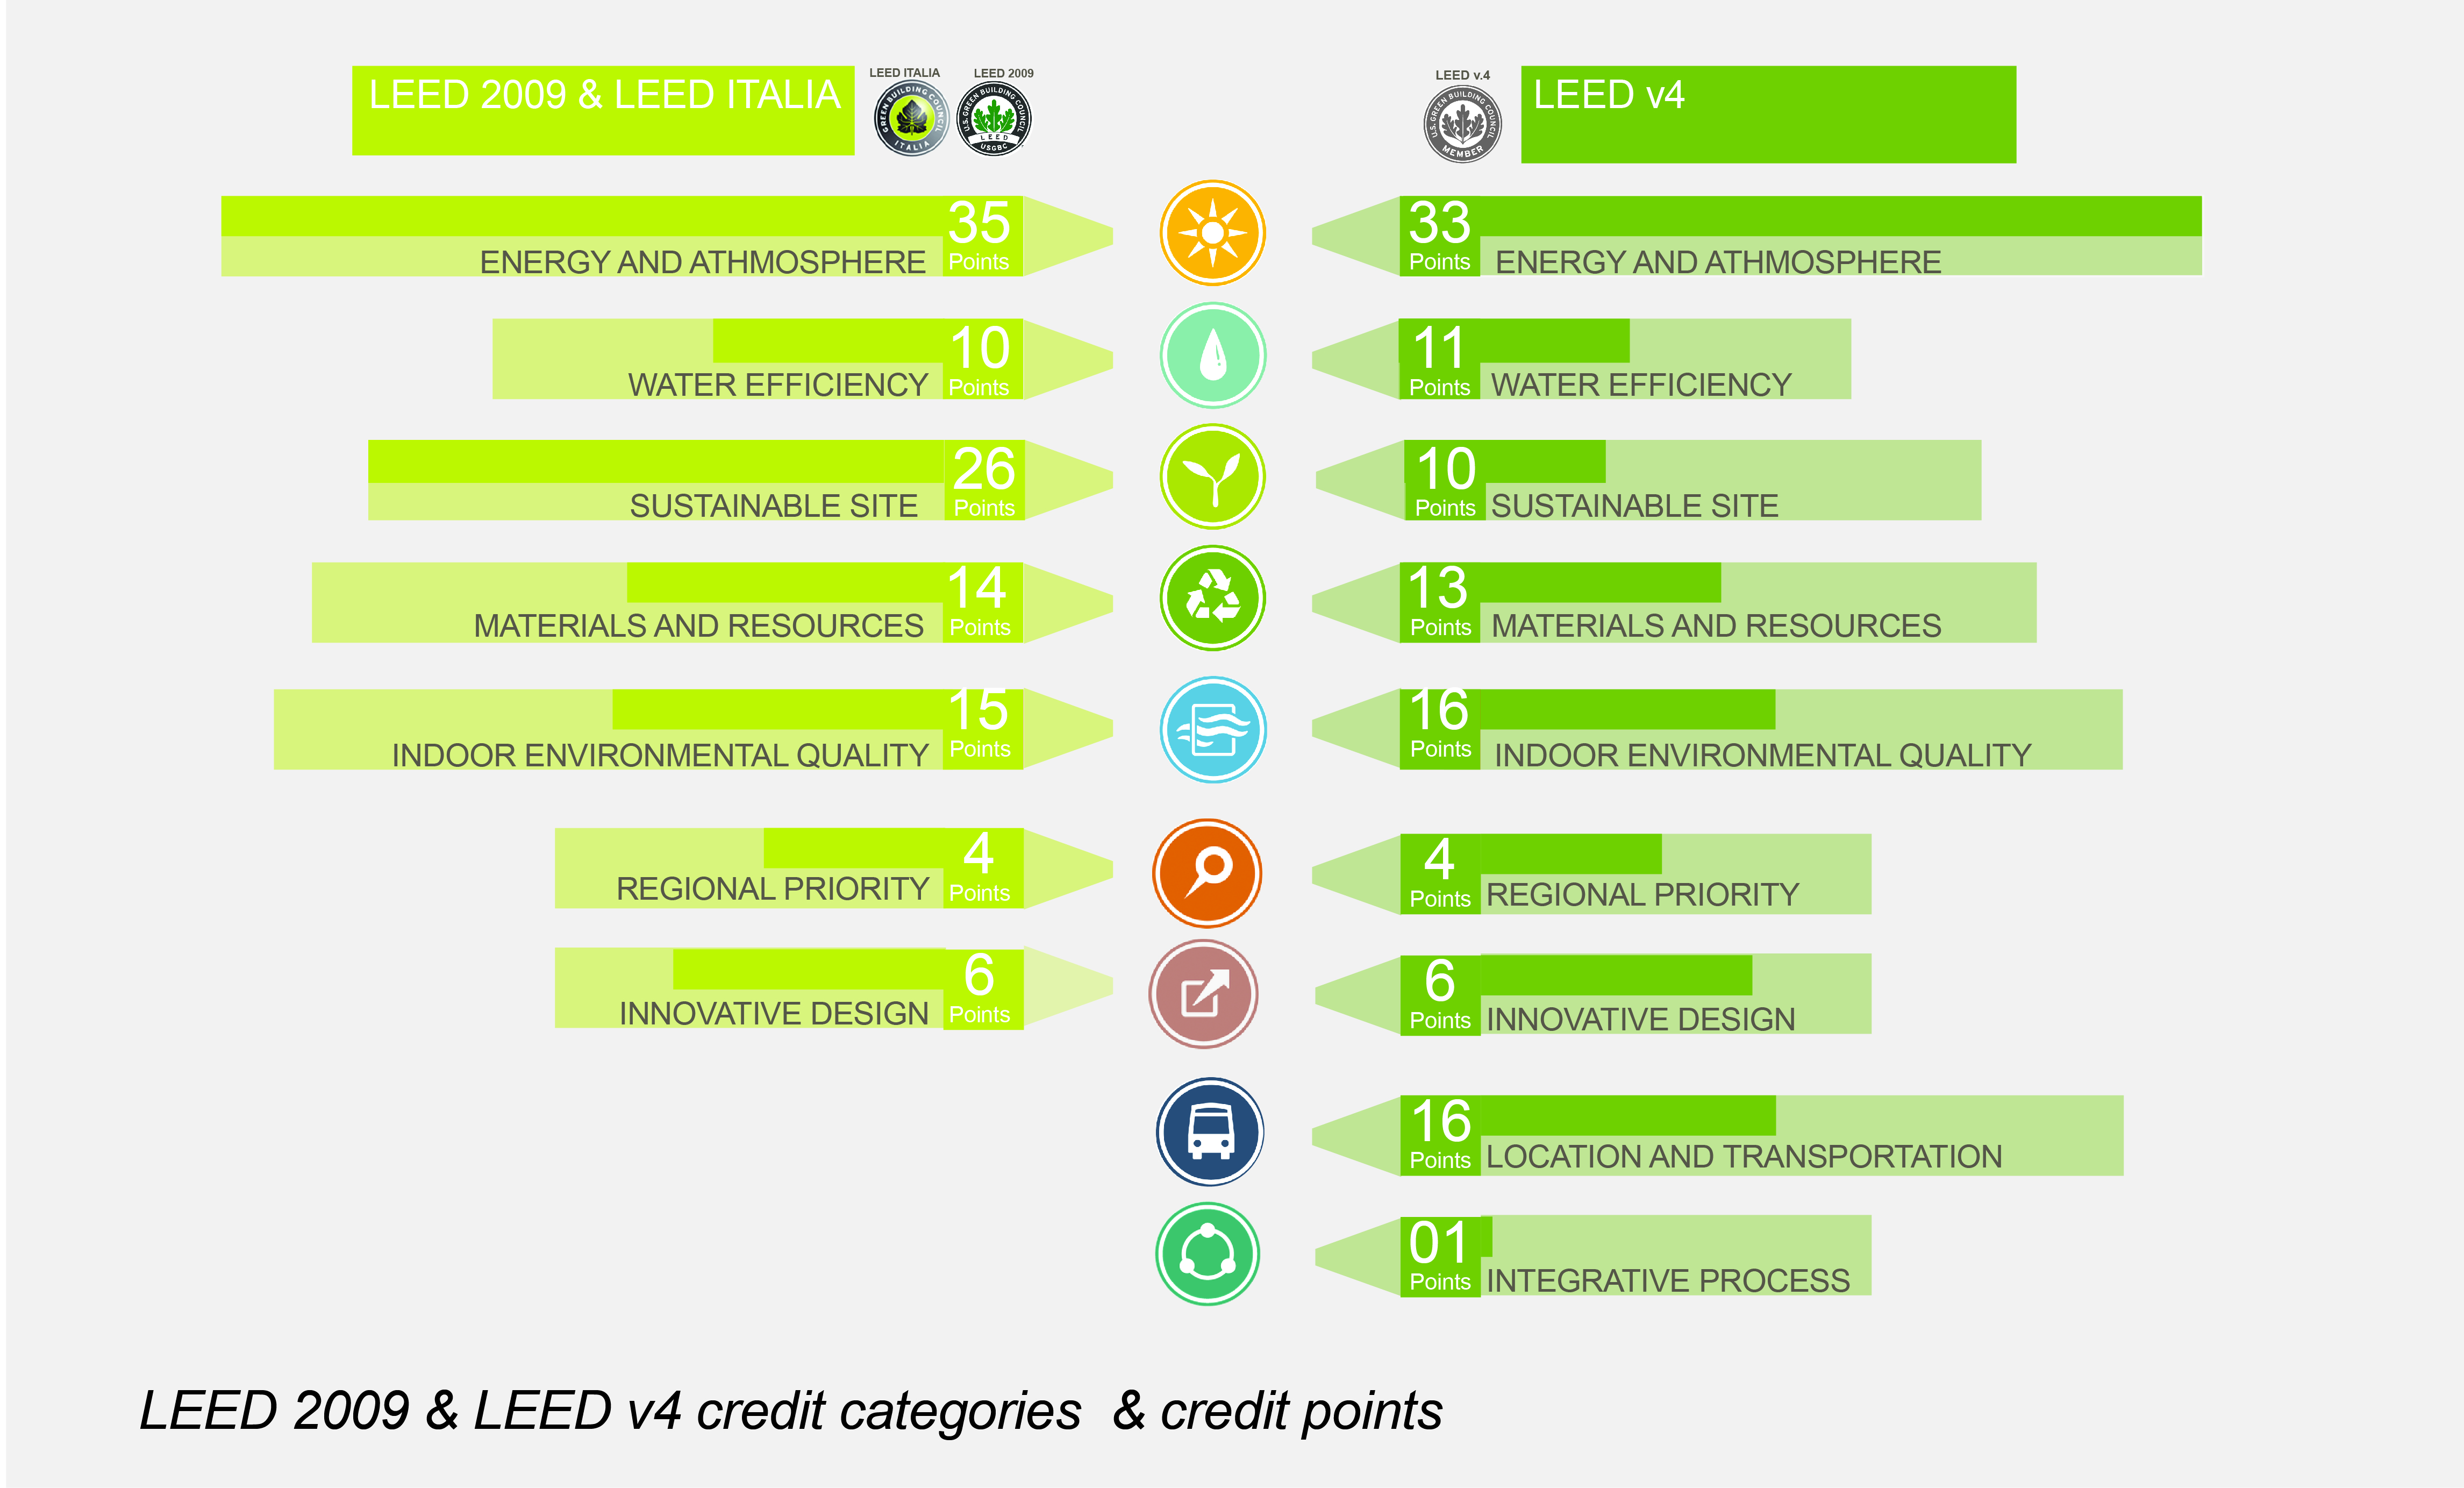 All the categories covered by LEED certification. Currently LEED v4 is the recent version.